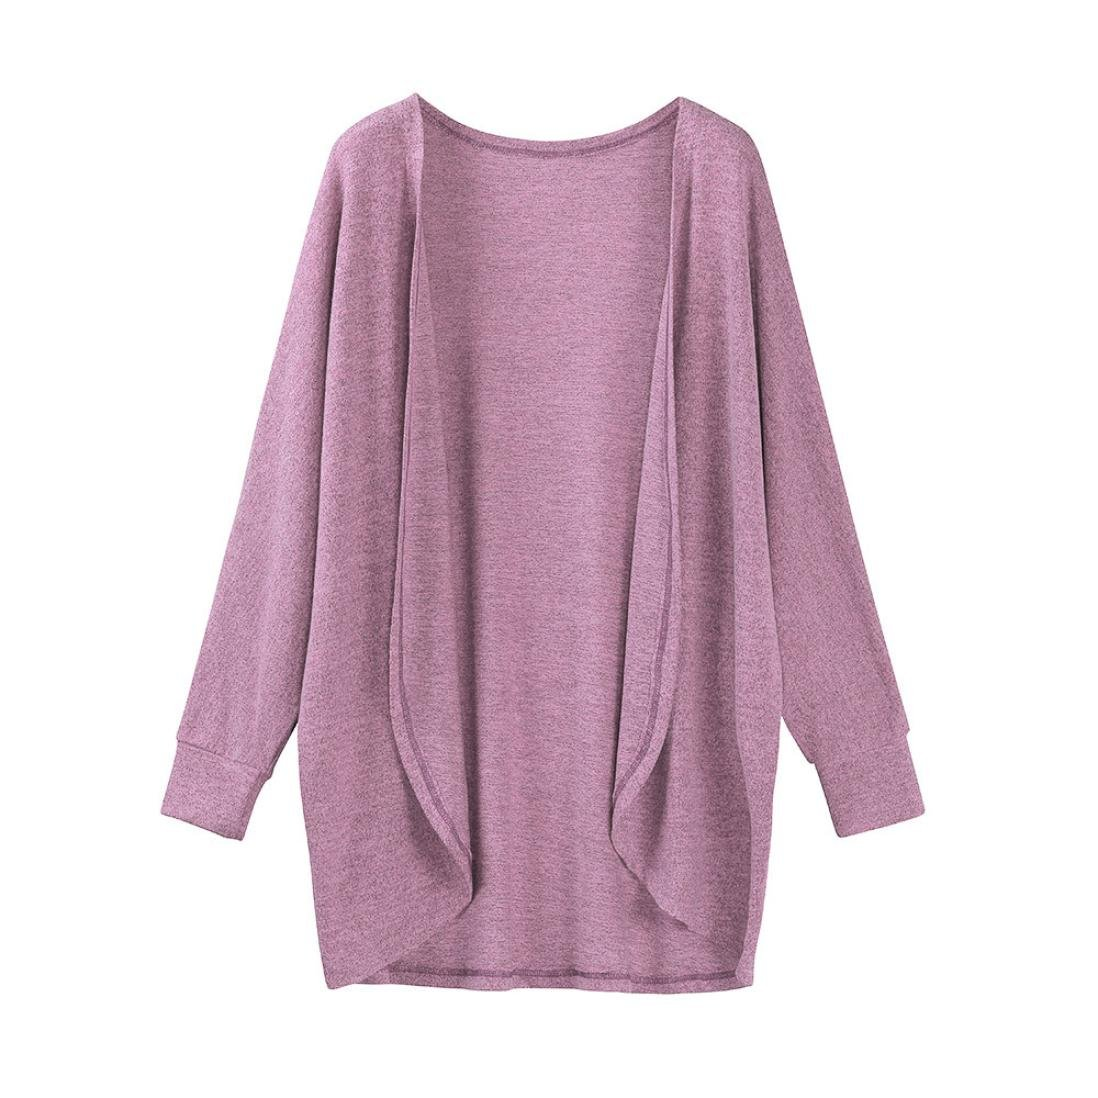 Hot Sale!Women's Cardigans Neartime Womens Kintted Cardigan Asymmetric Sweater Hem Long Sleeve Coat Tops (S, Pink)